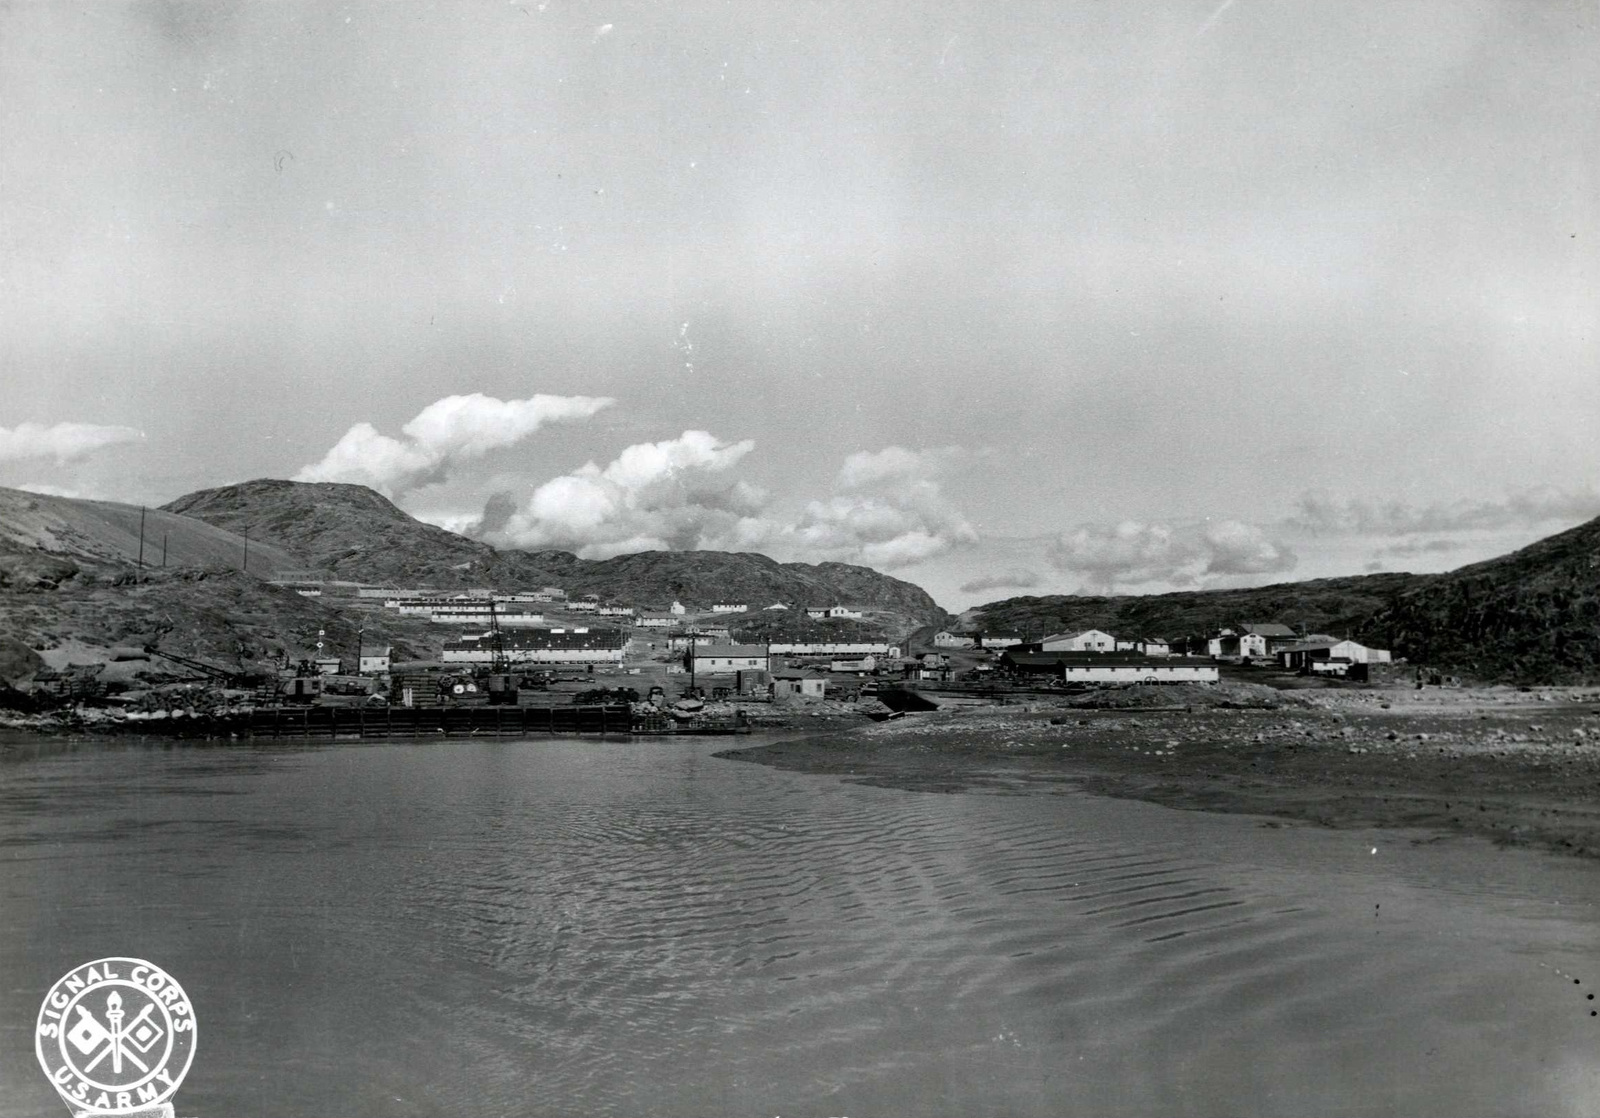 Port Area, Showing Dock for Barges in Greenland